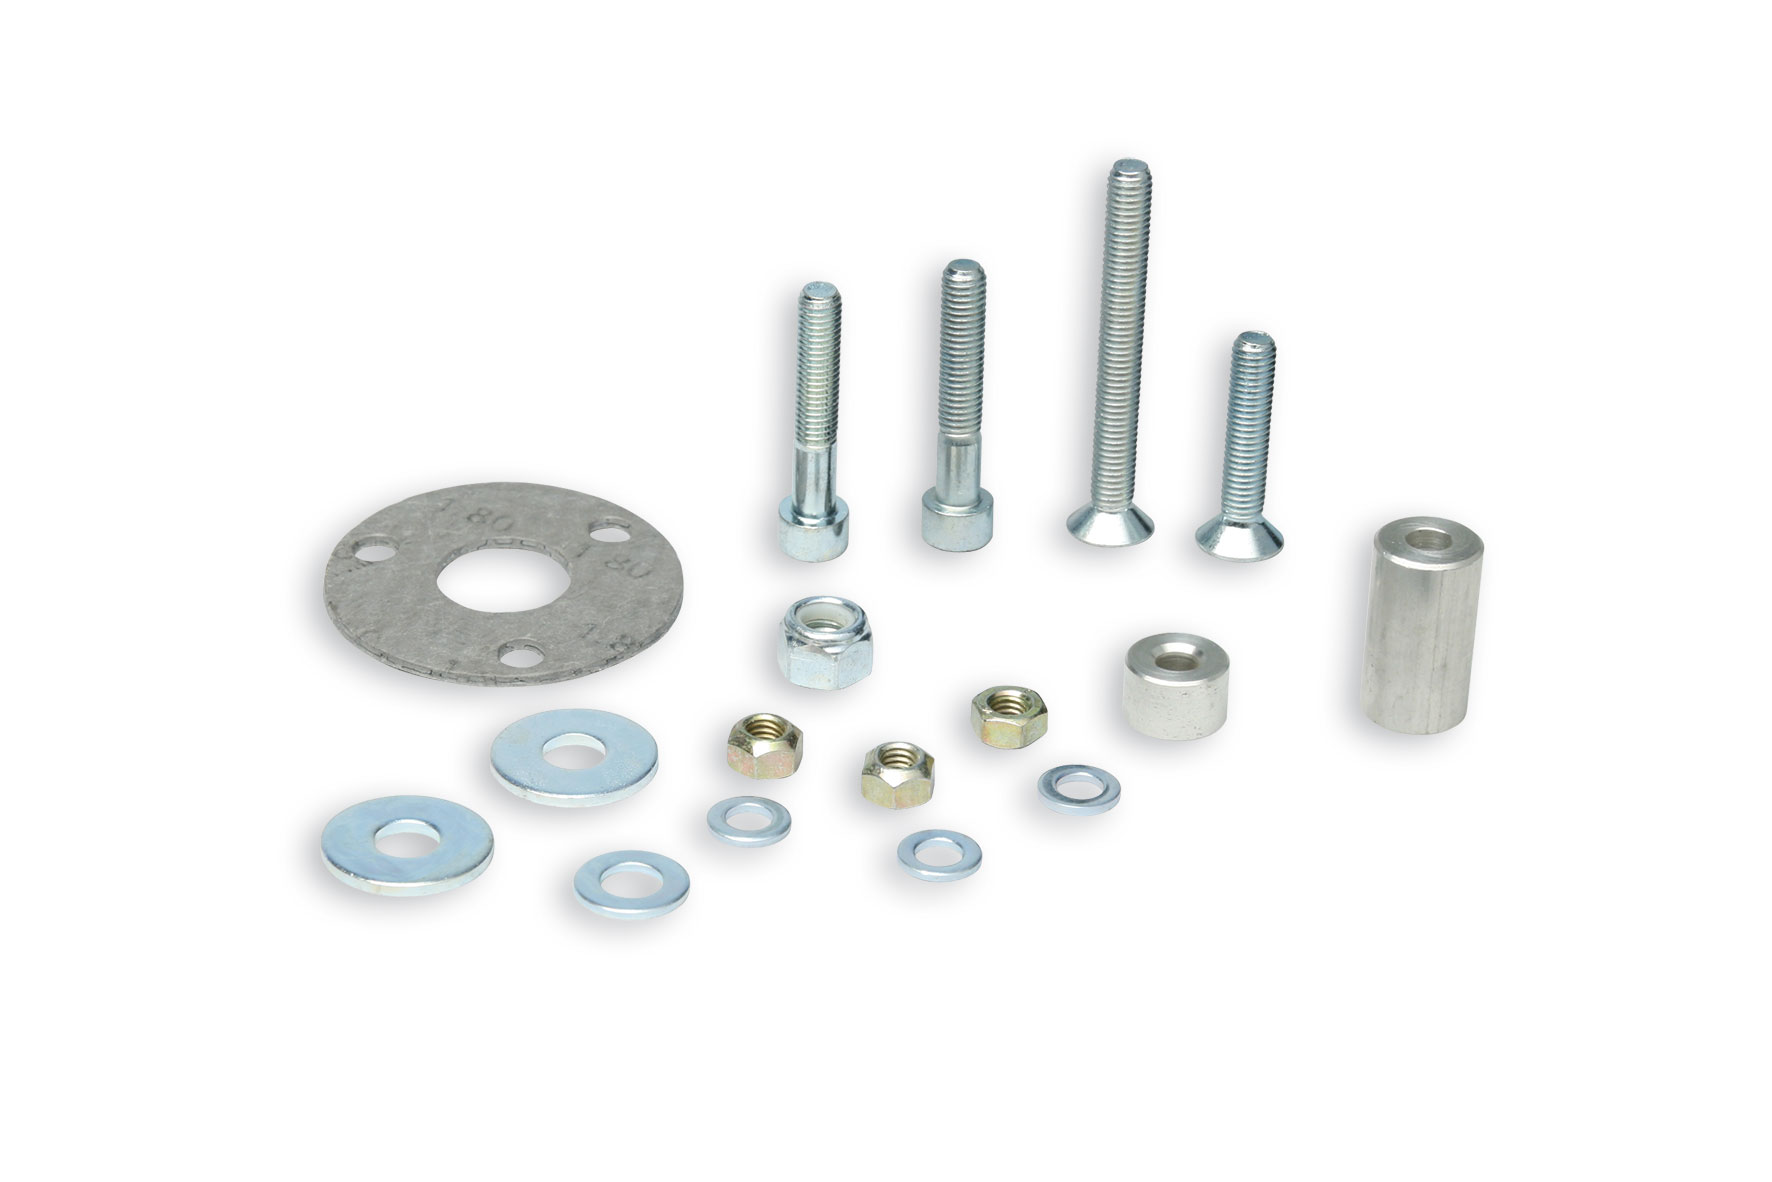 BOLT/GASKETS KIT for MHR REPLICA/ART OF PERFORMANCE